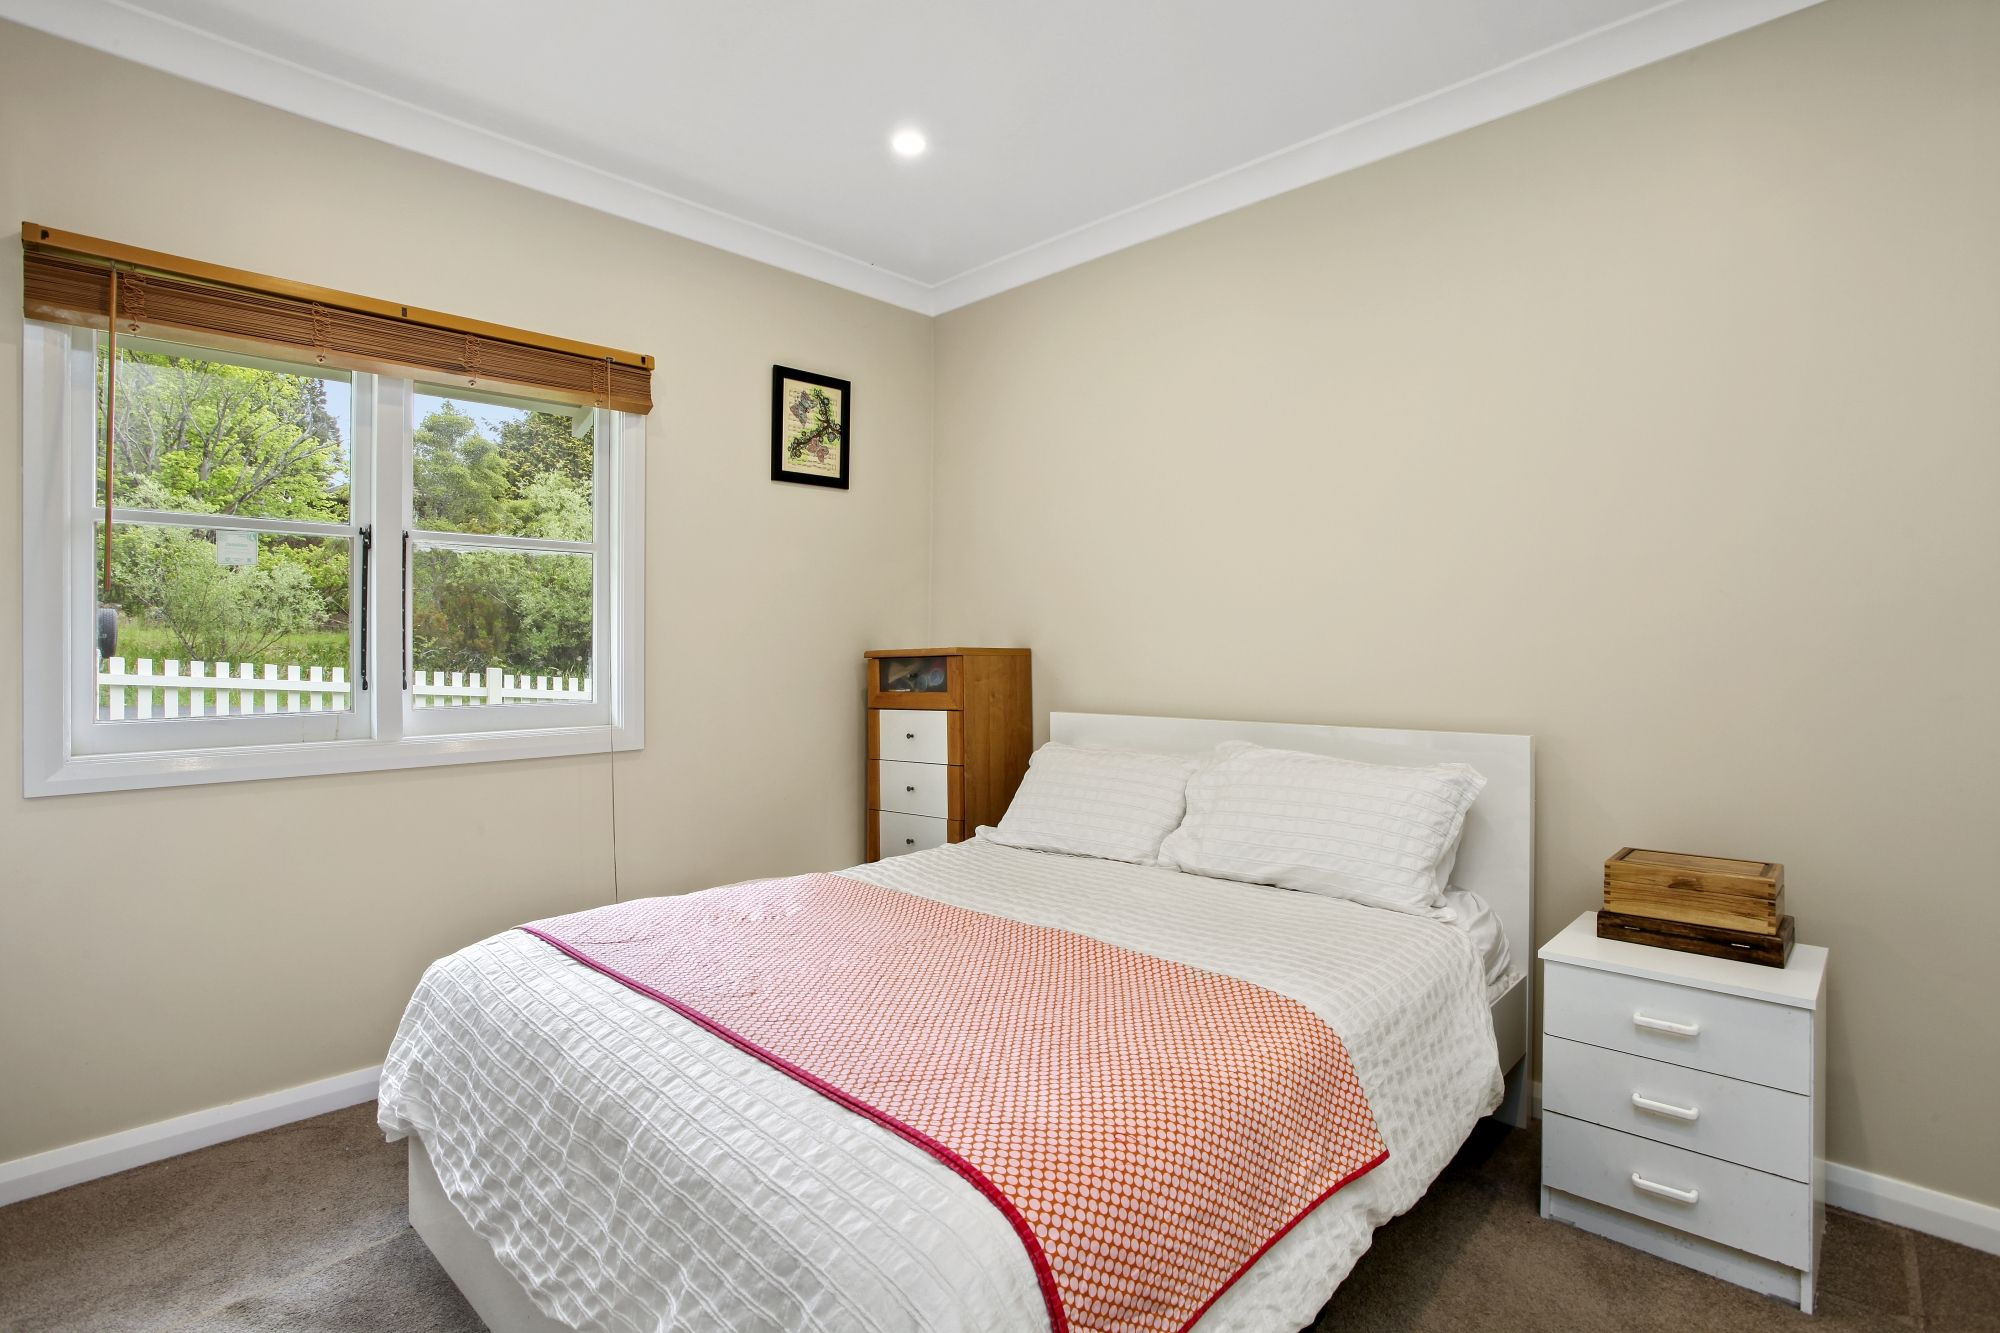 32 Hume Avenue Wentworth Falls 2782